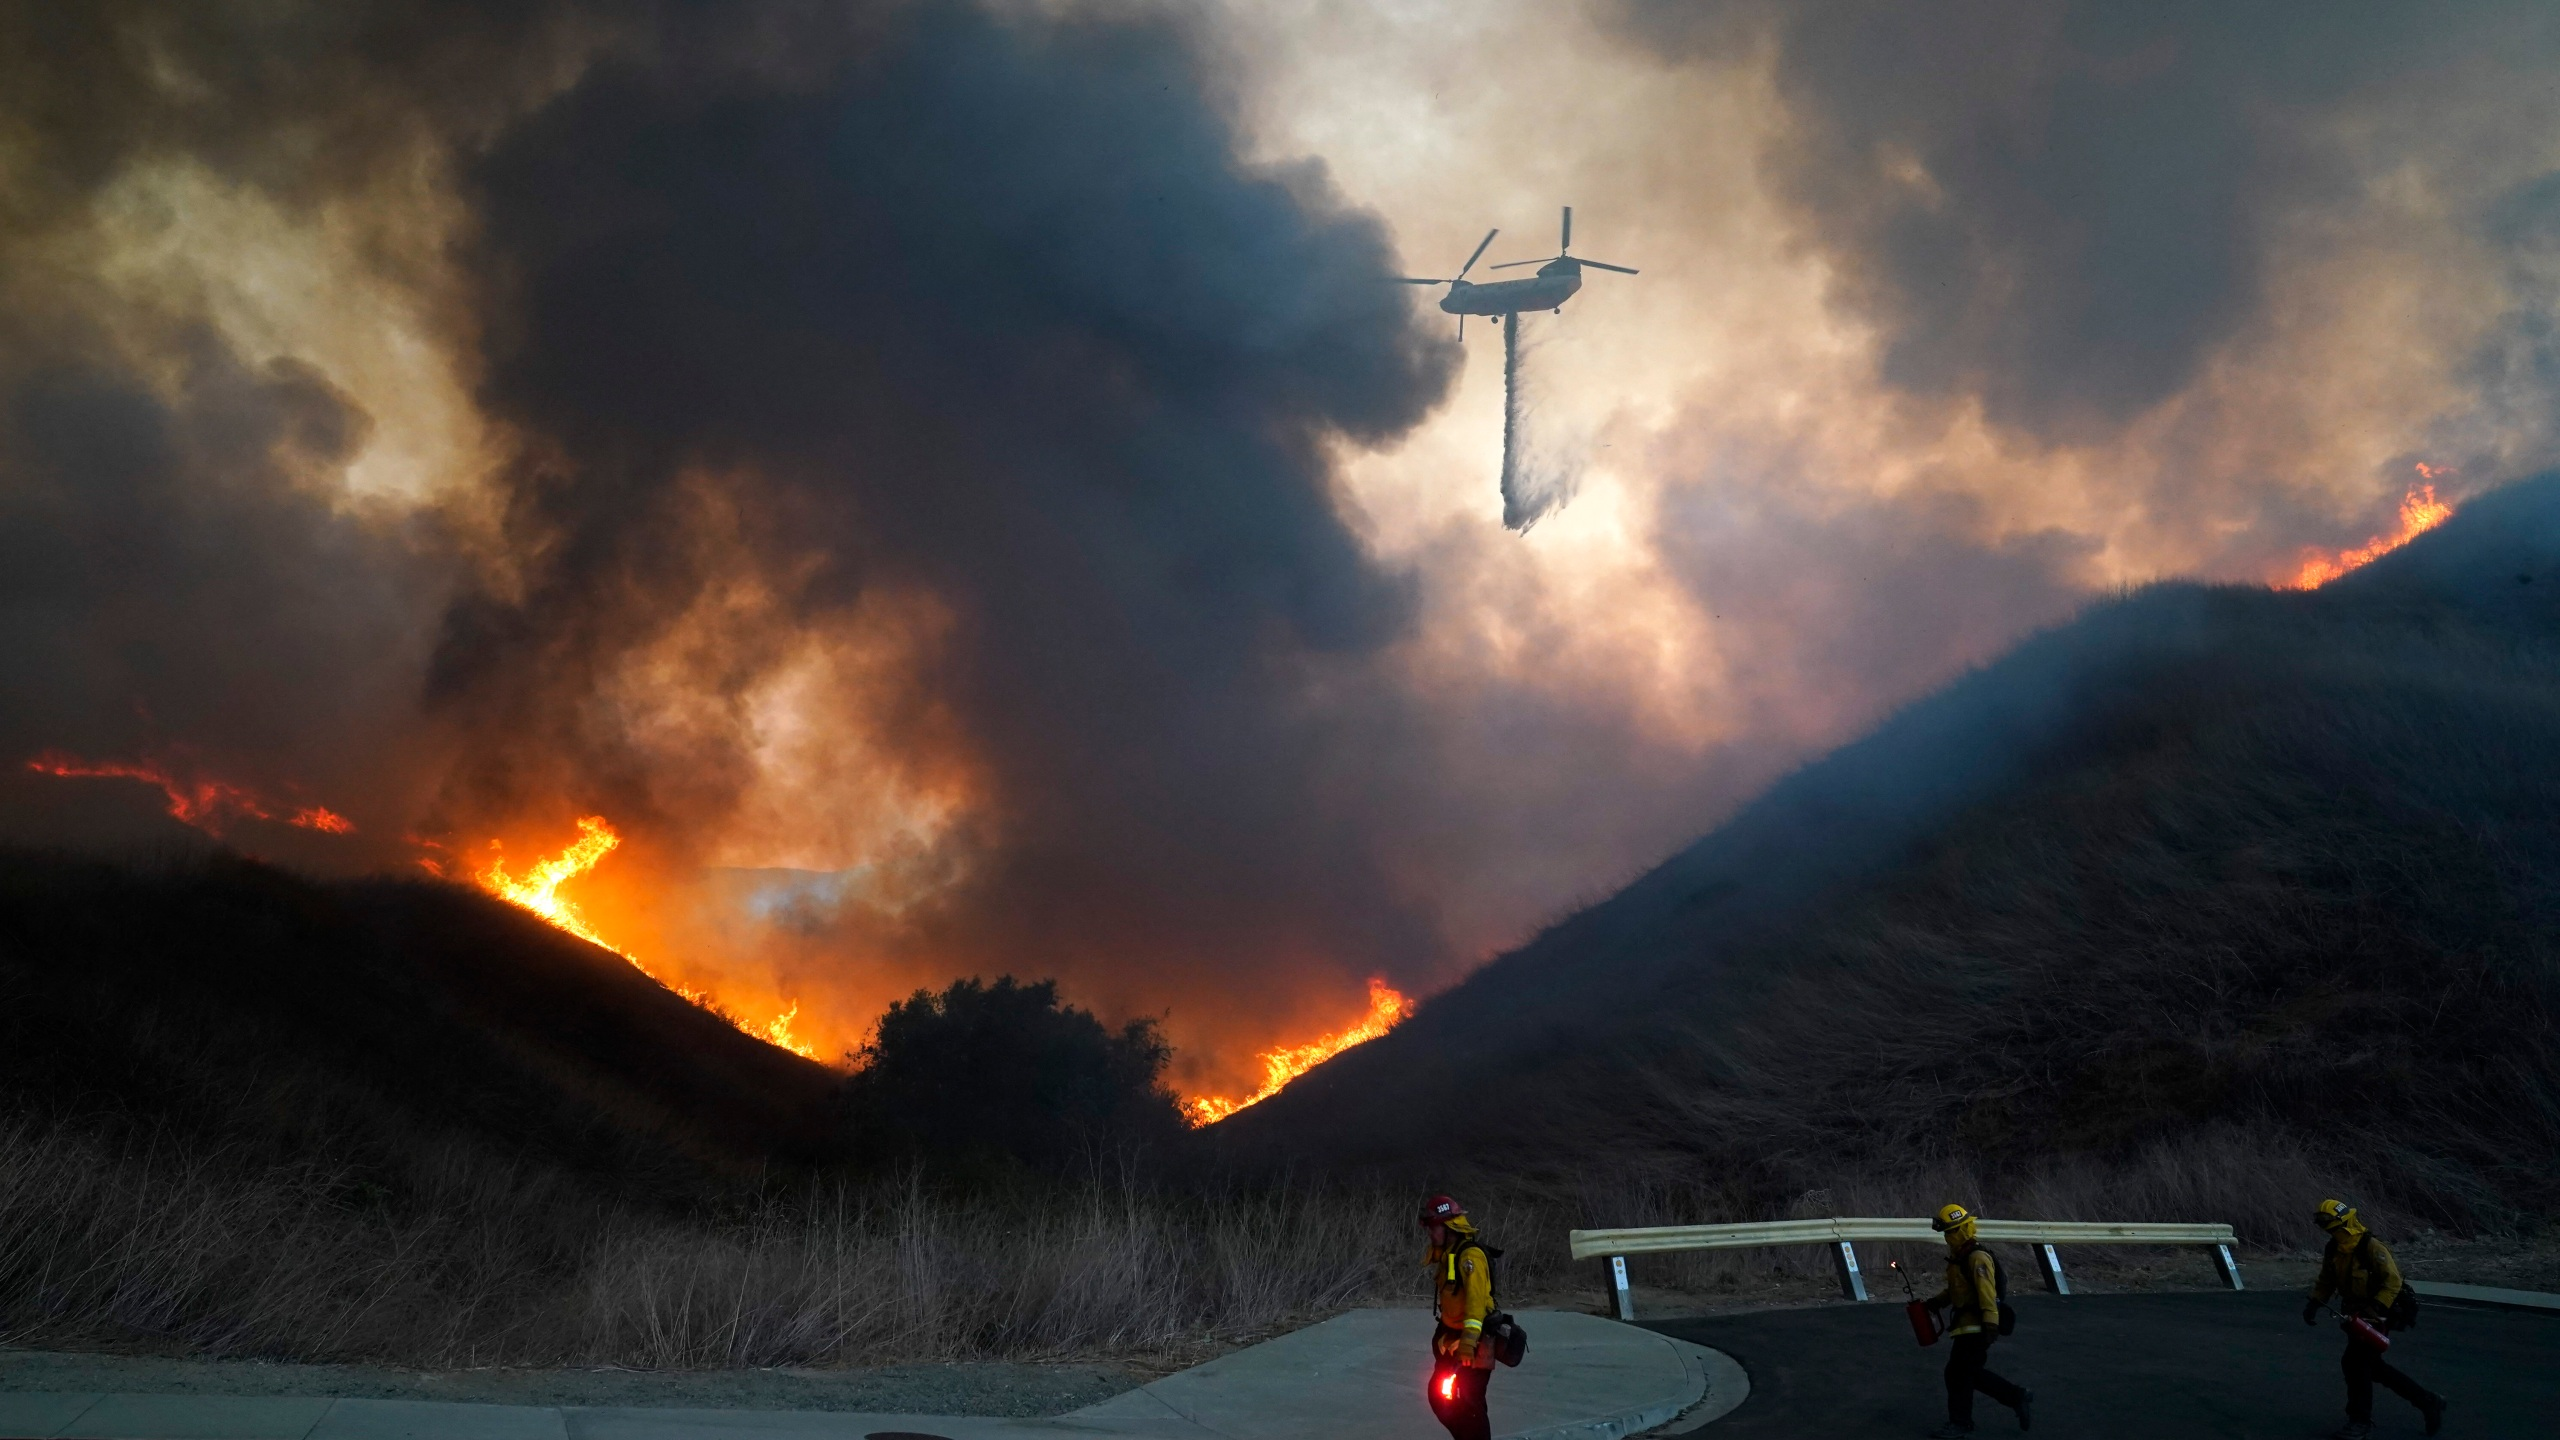 A helicopter drops water as firefighters walk with drip torches to set a backfire against the Blue Ridge Fire on Oct. 27, 2020, in Chino Hills. (Jae C. Hong / Associated Press)